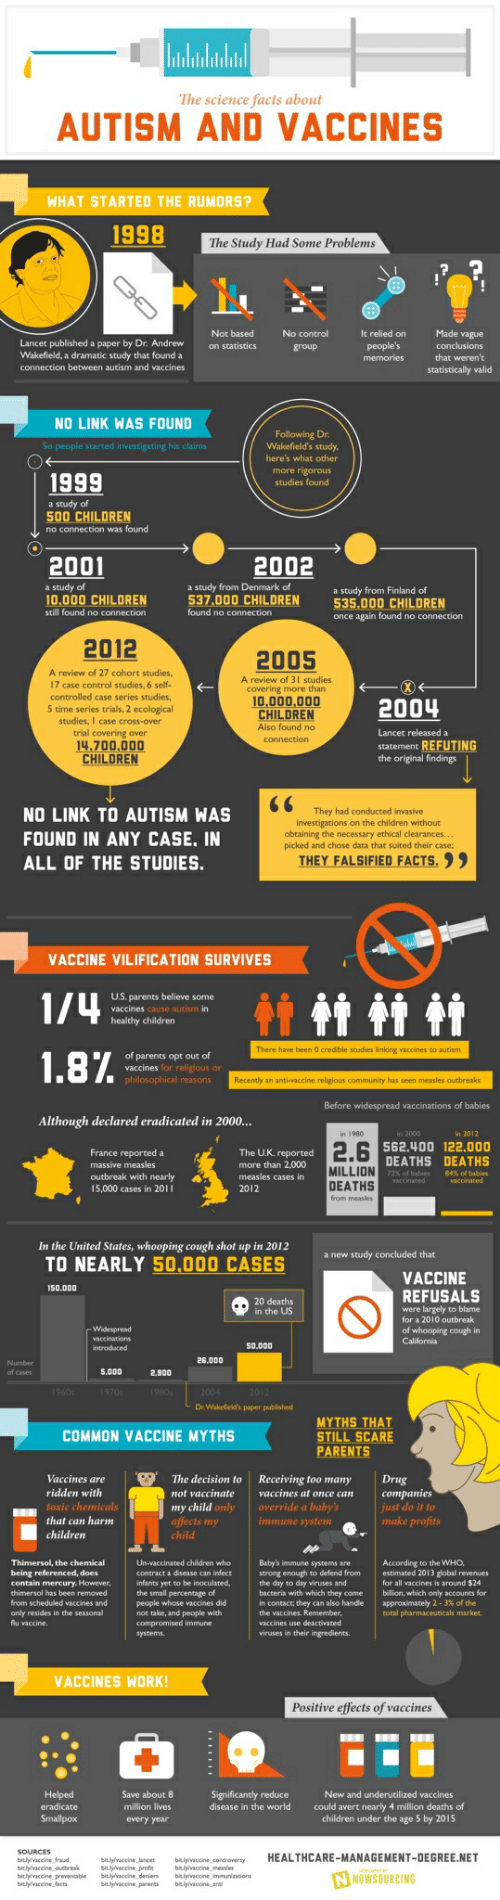 Children, Facts, and Parents: The science facts about  AUTISM AND VACCINES  WHAT STARTED THE RUMORS?  The Study Had Some Problems  Not based  Made vague  et  Wakefield, a dramatic study that found a  connection between autism and vaccines  statistically valid  NO LINK WAS FOUND  Dr  So people started investigating hi  here's what other  1999  studies found  500 CHILDREN  no connection was found  2001  2002  of  of  a study from Finland of  535,000 CHILDREN  537.000 CHILDREN  10,000 CHILDREN  still found no connection  no  once again found no c  2012  2005  A review of 27 cohort studies  17 case control studies, 6 self-  controlled case series studies  5 time series trials, 2 ecological  A review of 3l studies  covering more than  10,000,000  CHILDREN  Also found no  2004  case cross-over  trial covering over  14.700,000  CHILDREN  statement REFUTING  the original findings  NO LINK TO AUTISM WAS  FOUND IN ANY CASE. IN  ALL OF THE STUDIES.  They had conducted invasive  investigations on the children without  obtaining the necessary ethical clearances.  picked and chose data that suited their case:  THEY FALSIFİED FACTS. , ,  VACCINE VILIFICATION SURVIVES  some  vaccines cause autism in  There have been 0 credible studies linking vaccines to autism  of parents opt out of  Although declared eradicated in 2000...  in 1980  The UK. reported  more than 2,000  562.400 122.000  DEATHS DEATHS  massive measles  MILLION  72% of babies  84% of babies  DEATHS  from measles  15,000 cases in 20  In the United States, whooping cough shot up in 2012  TO NEARLY 50,000 CASES anew study concluded tha  VACCINE  REFUSALS  S0.000  in the US  of  in  0.000  26.000  S.000  2.900  Dr. Wakefield's paper published  MYTHS THAT  STILL SCARE  PARENTS  COMMON VACCINE MYTHS  Vaccines areThe decision to Receiving too manyDrug  not vaccinate vaccines at once can companies  only override a baby's  that can harm  immune system  make profits  Thimersol, the chemical  being referenced, does  Un-vaccinated